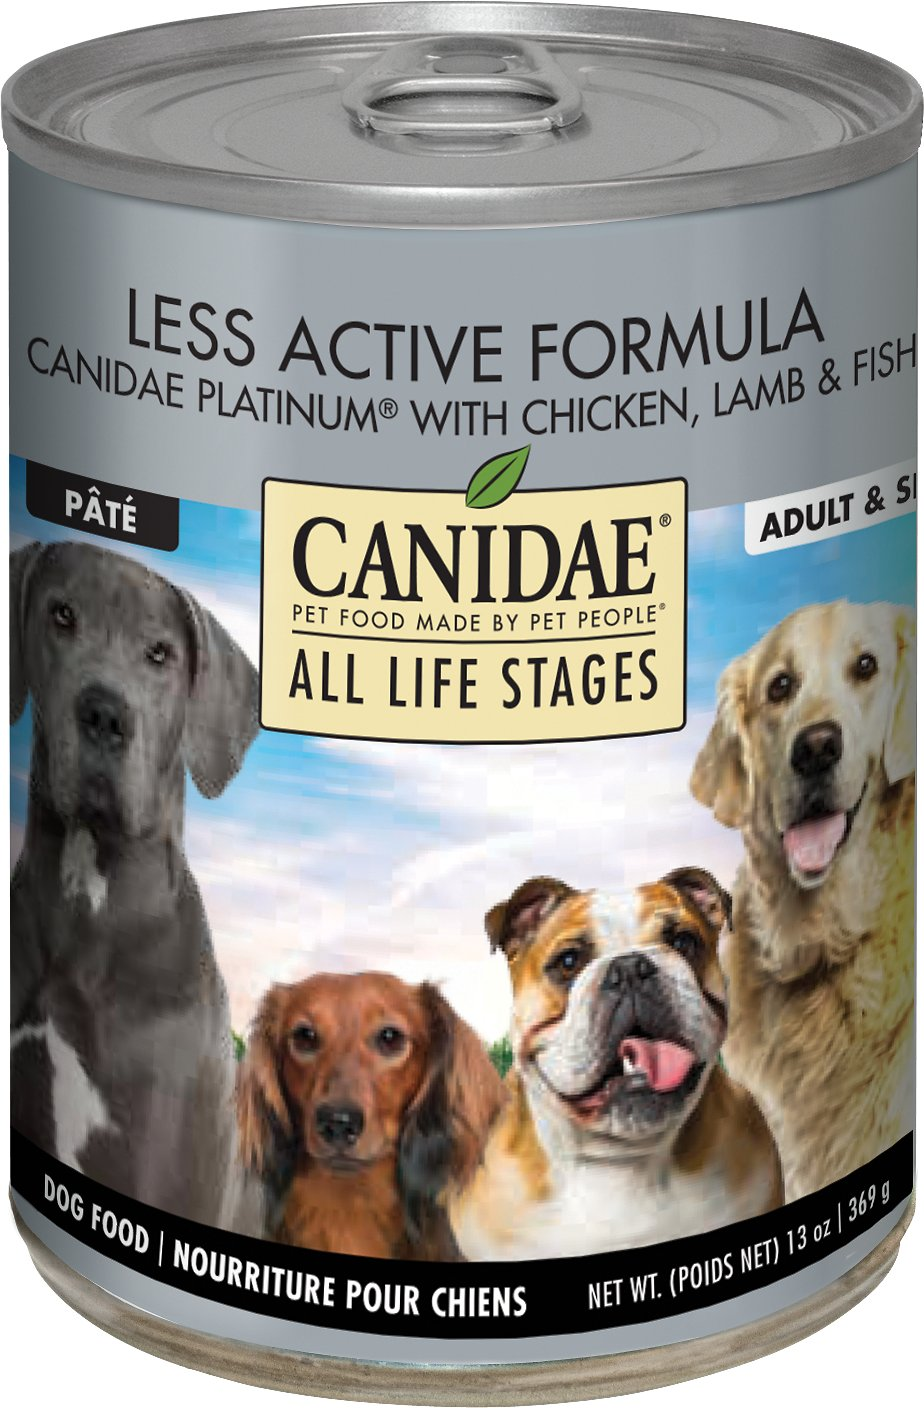 Canidae Platinum Canned Dog Food Reviews